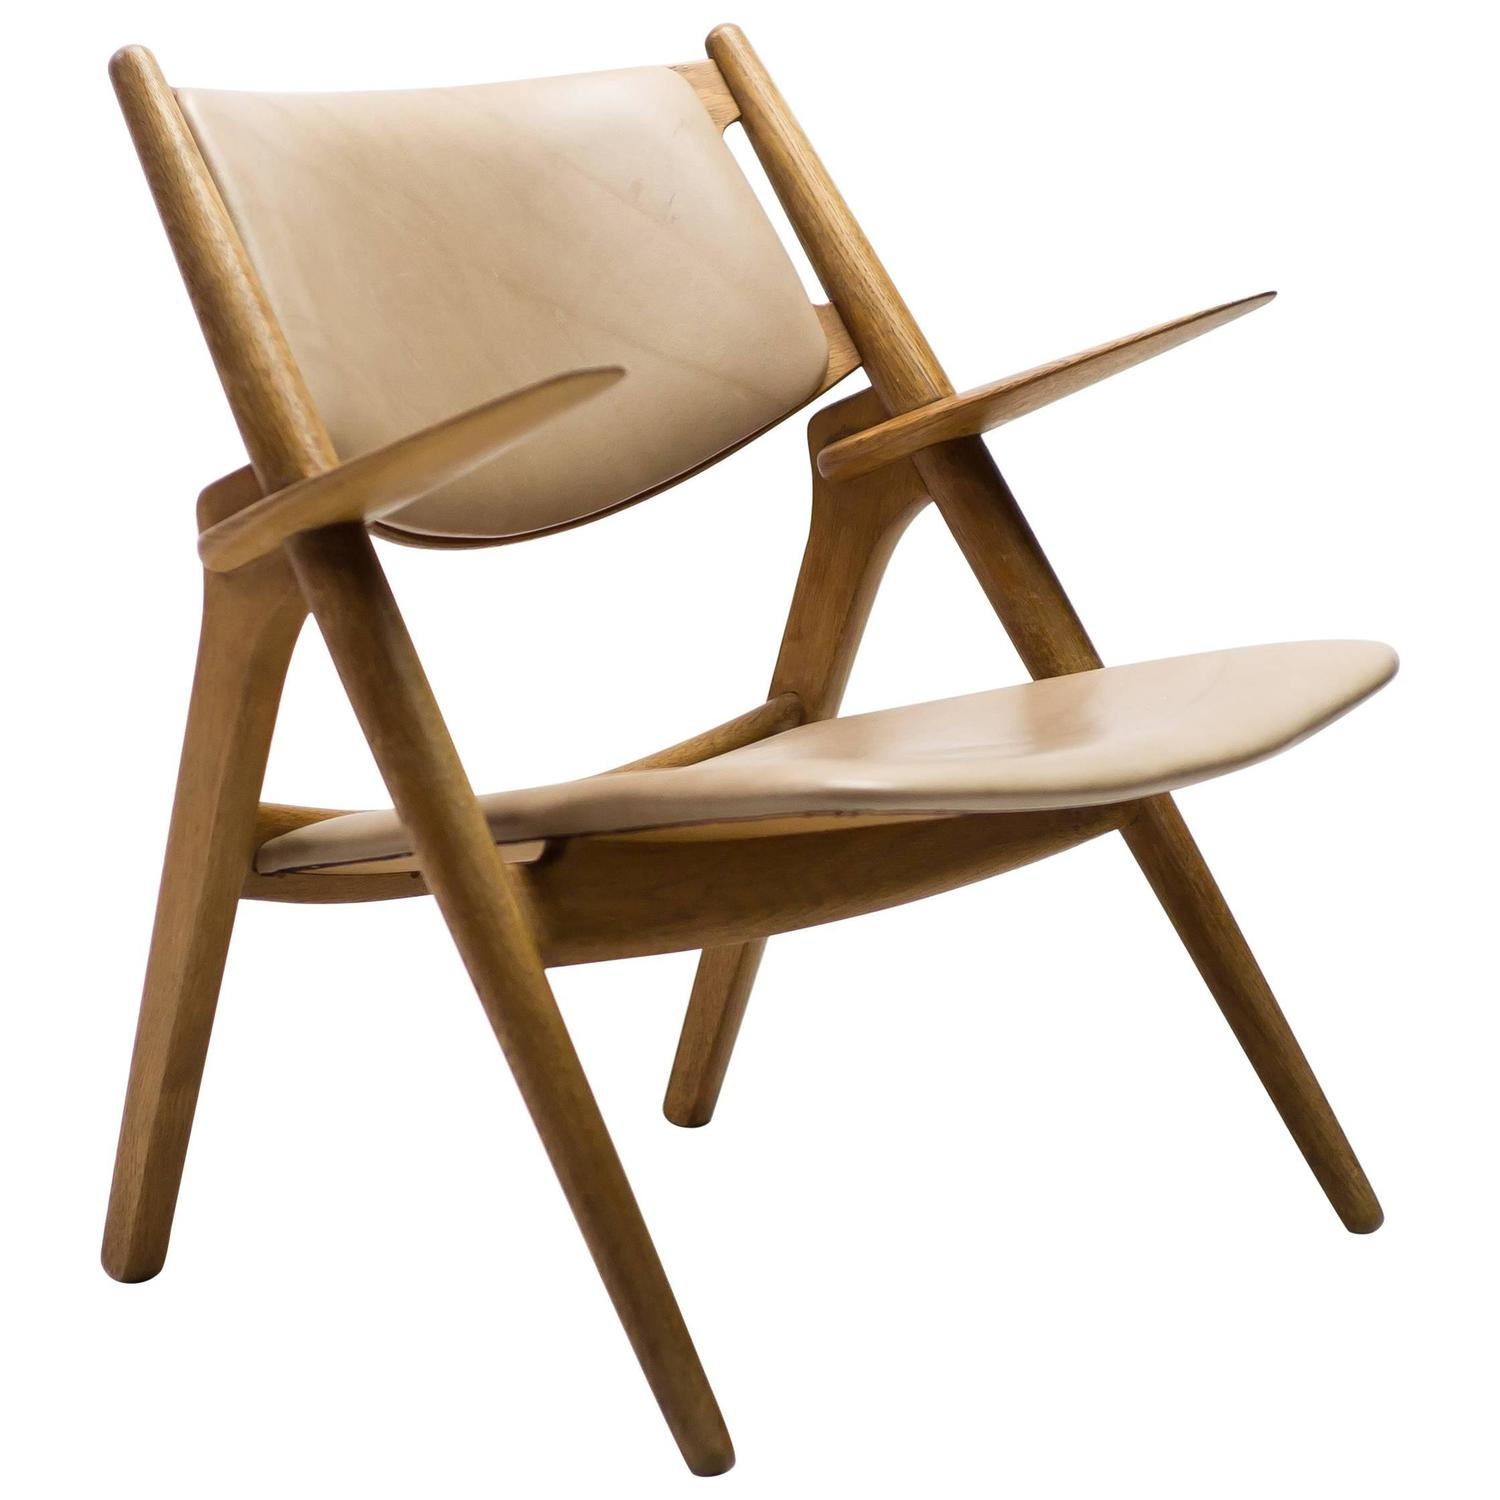 Hans Wegner CH 28 Sawbuck Chair For Sale at 1stdibs